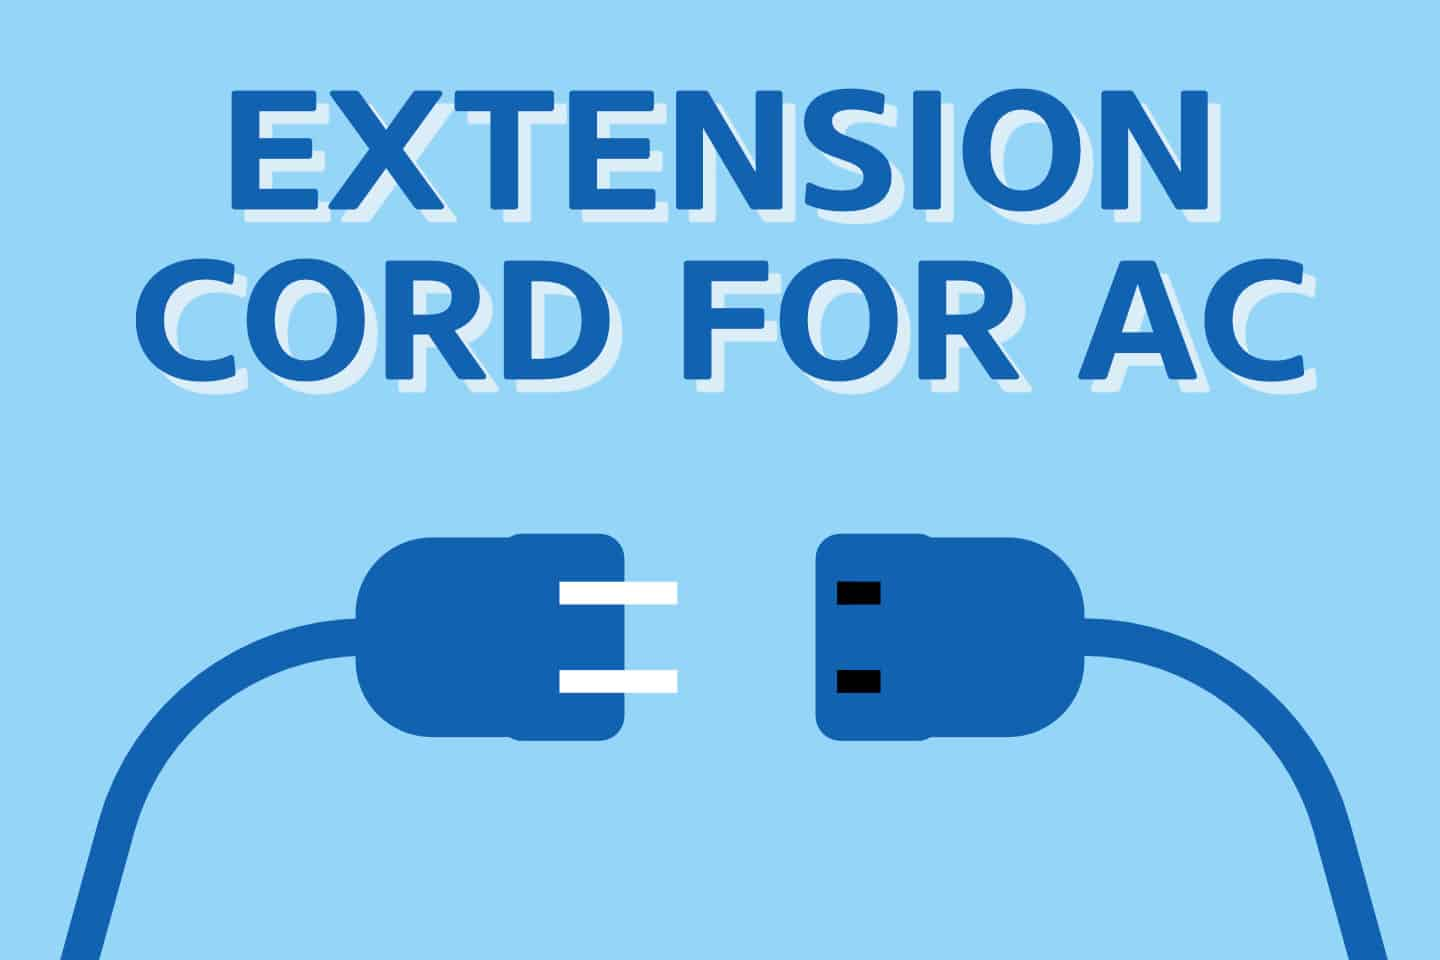 ❄️ How To Use An Extension Cord for AC [Smart & Simple Way]